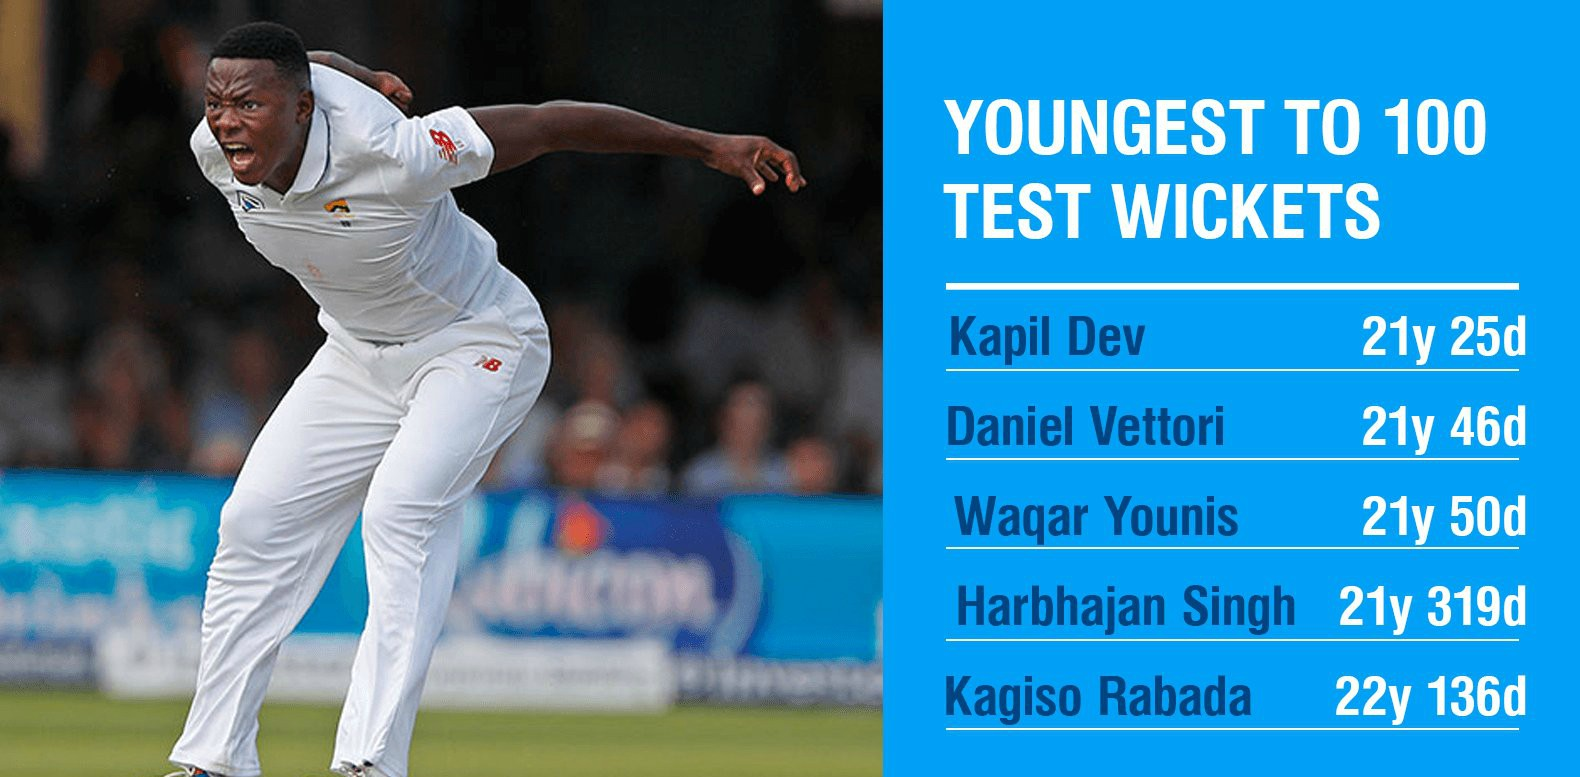 Fifth Youngest to get 100 wickets